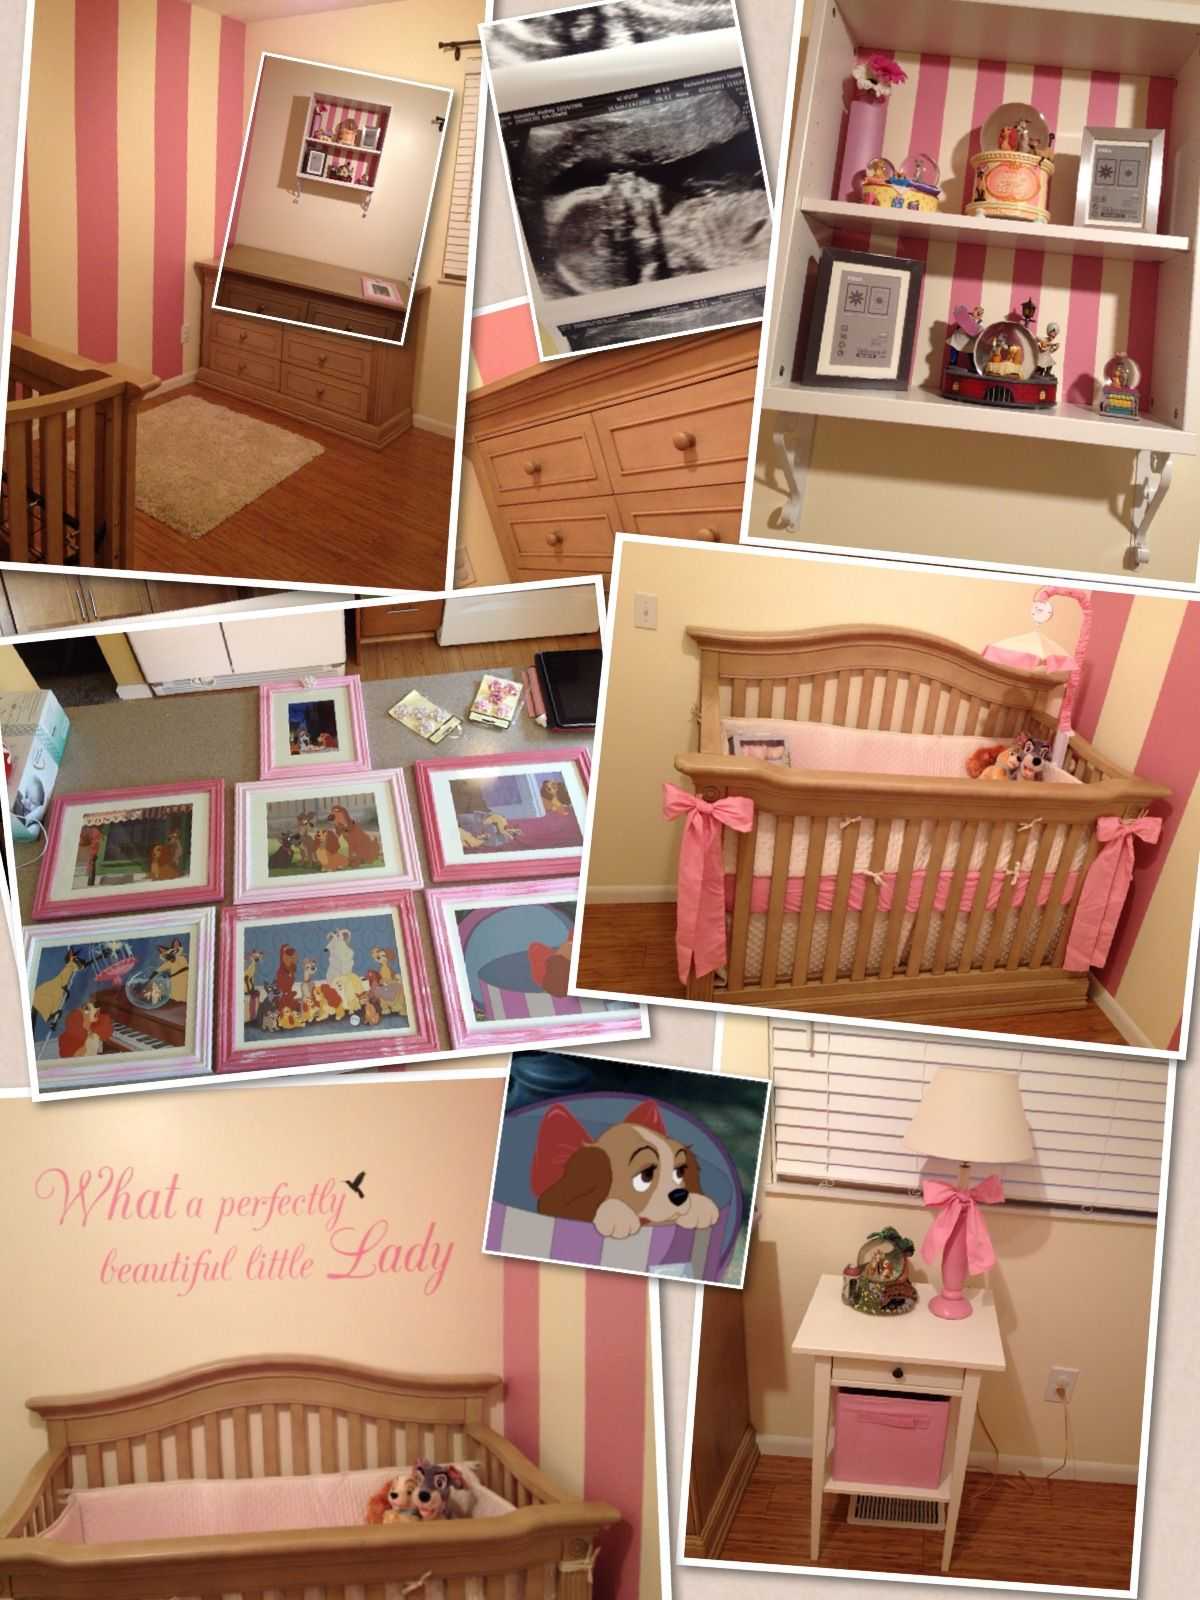 Lady And The Tramp Nursery If I Have A Little Girl This Is It I Love Lady And The Tramp Baby Girls Nursery Girls Disney Nursery Baby Girl Room